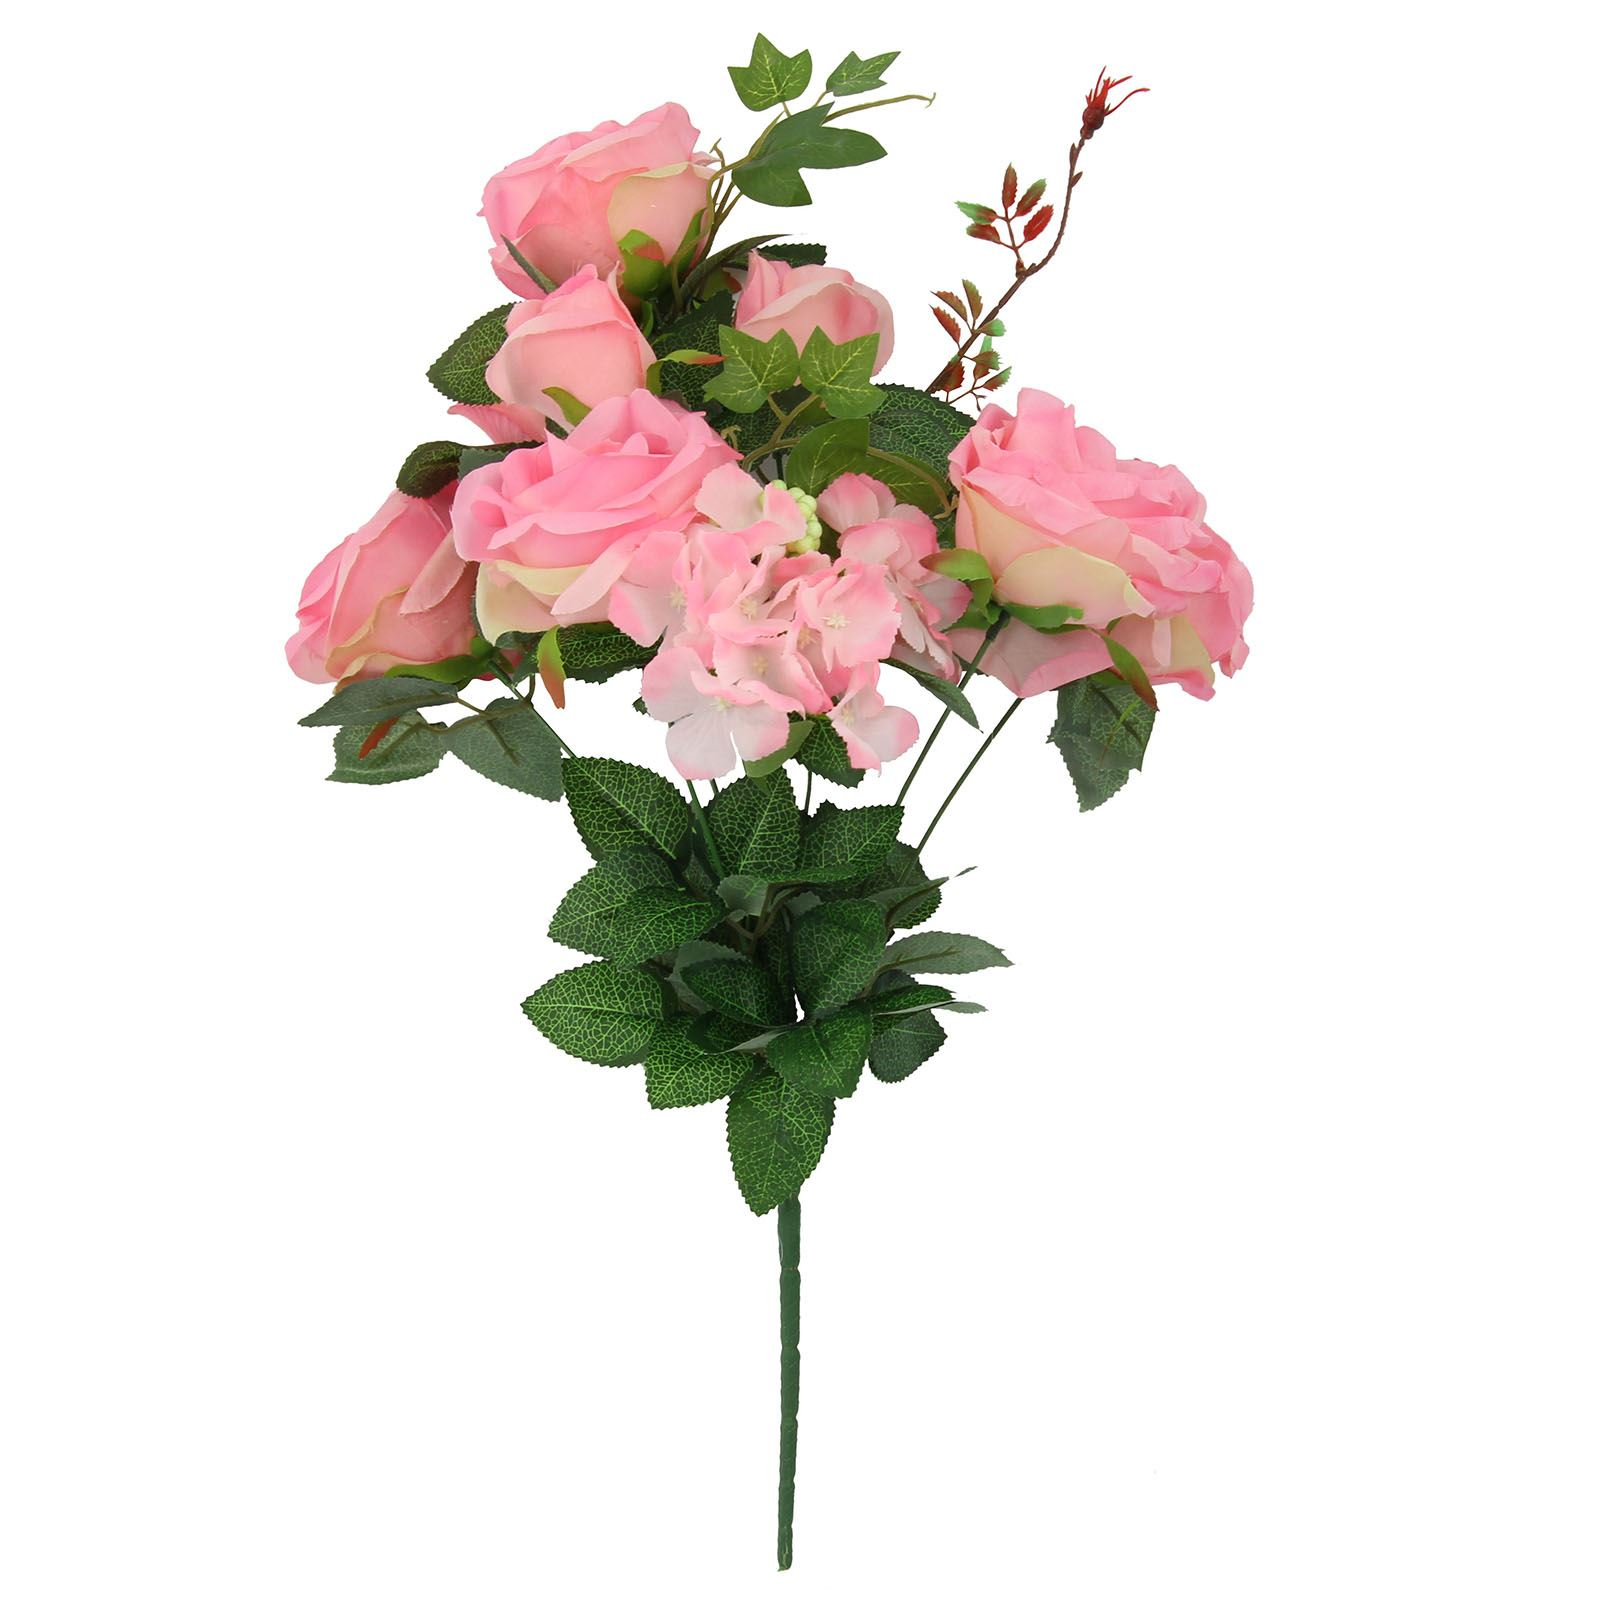 XL 9 Head Rose and Hydrangea Bouquet! Quality Large Fake ...